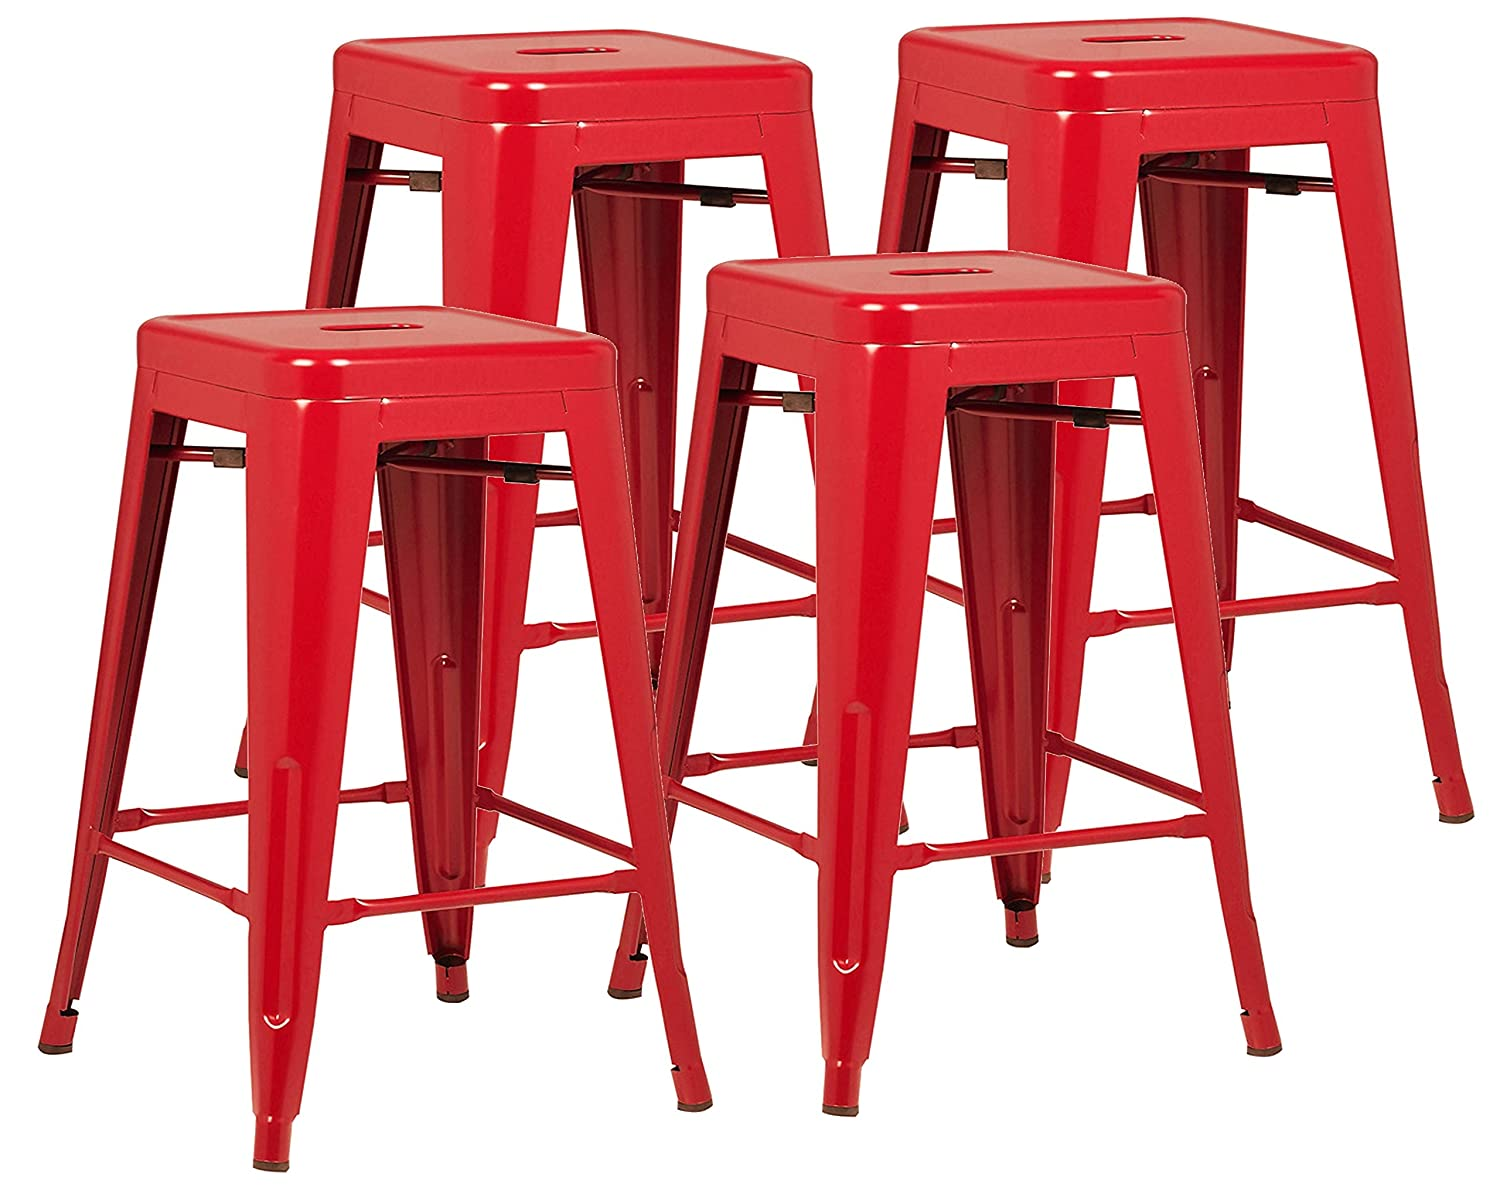 Poly and Bark Trattoria 24 Counter Height Stool in Red Set of 4